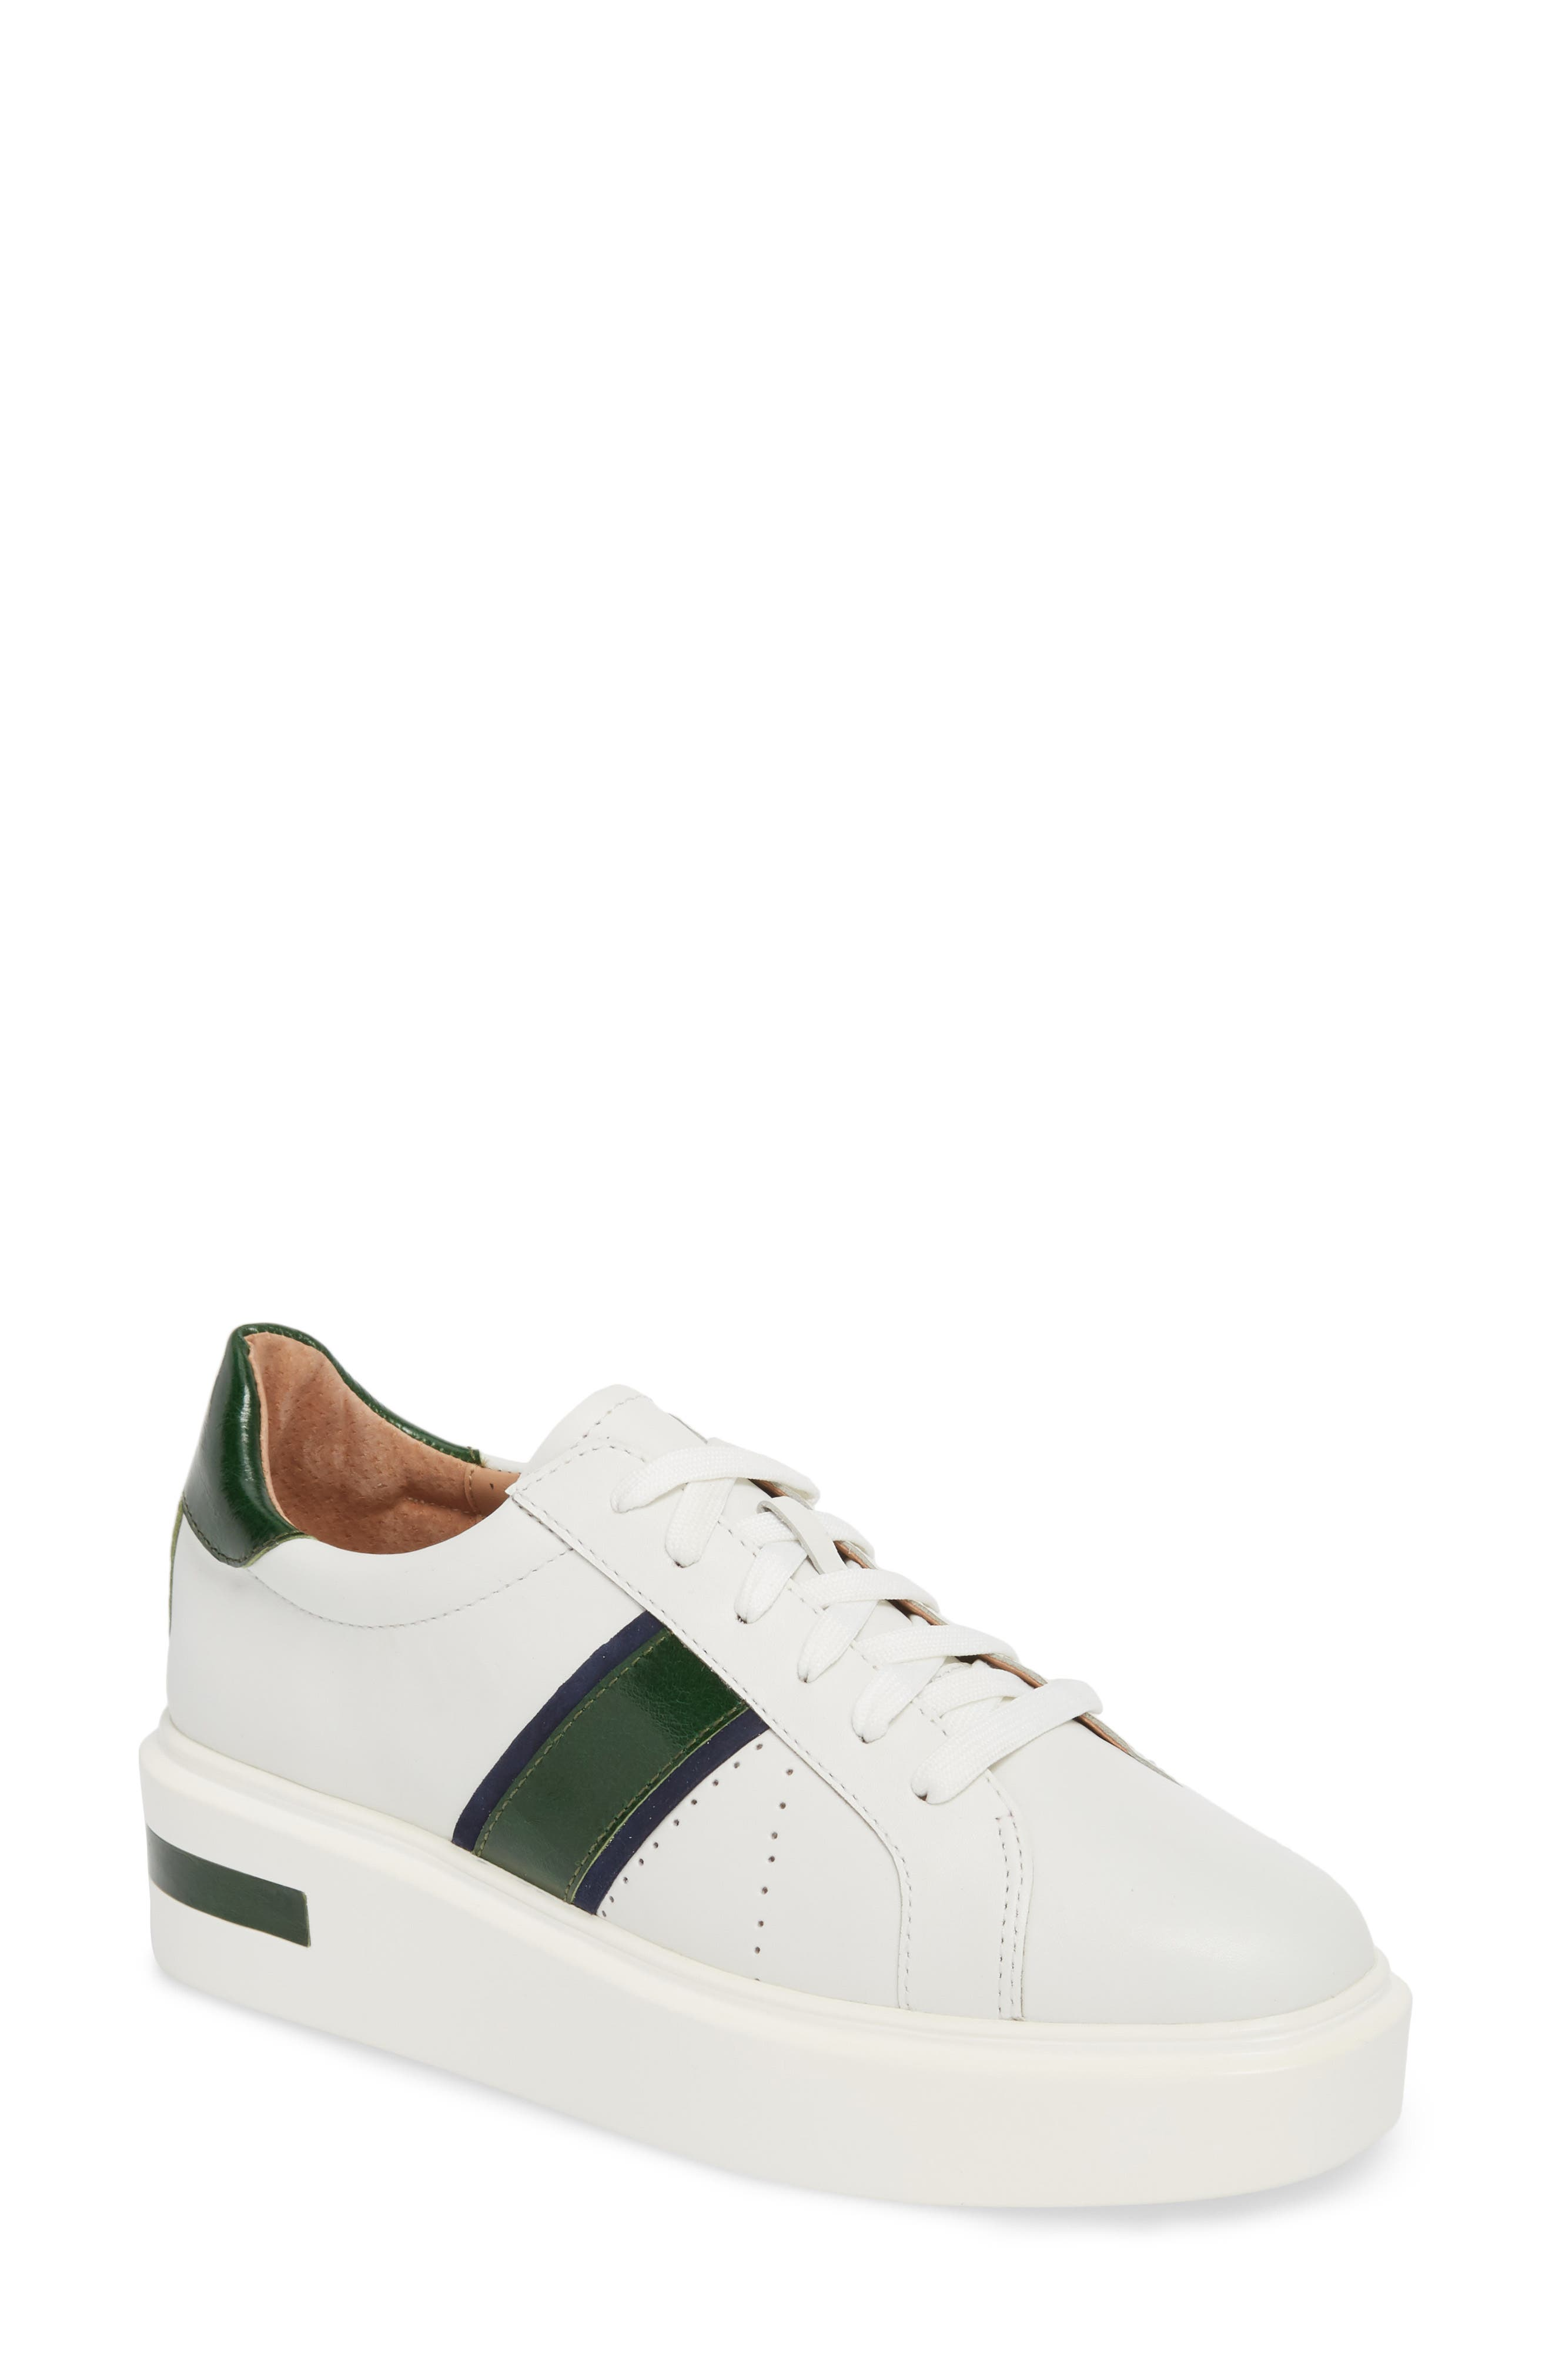 LINEA PAOLO Knox Platform Sneaker, Main, color, WHITE LEATHER